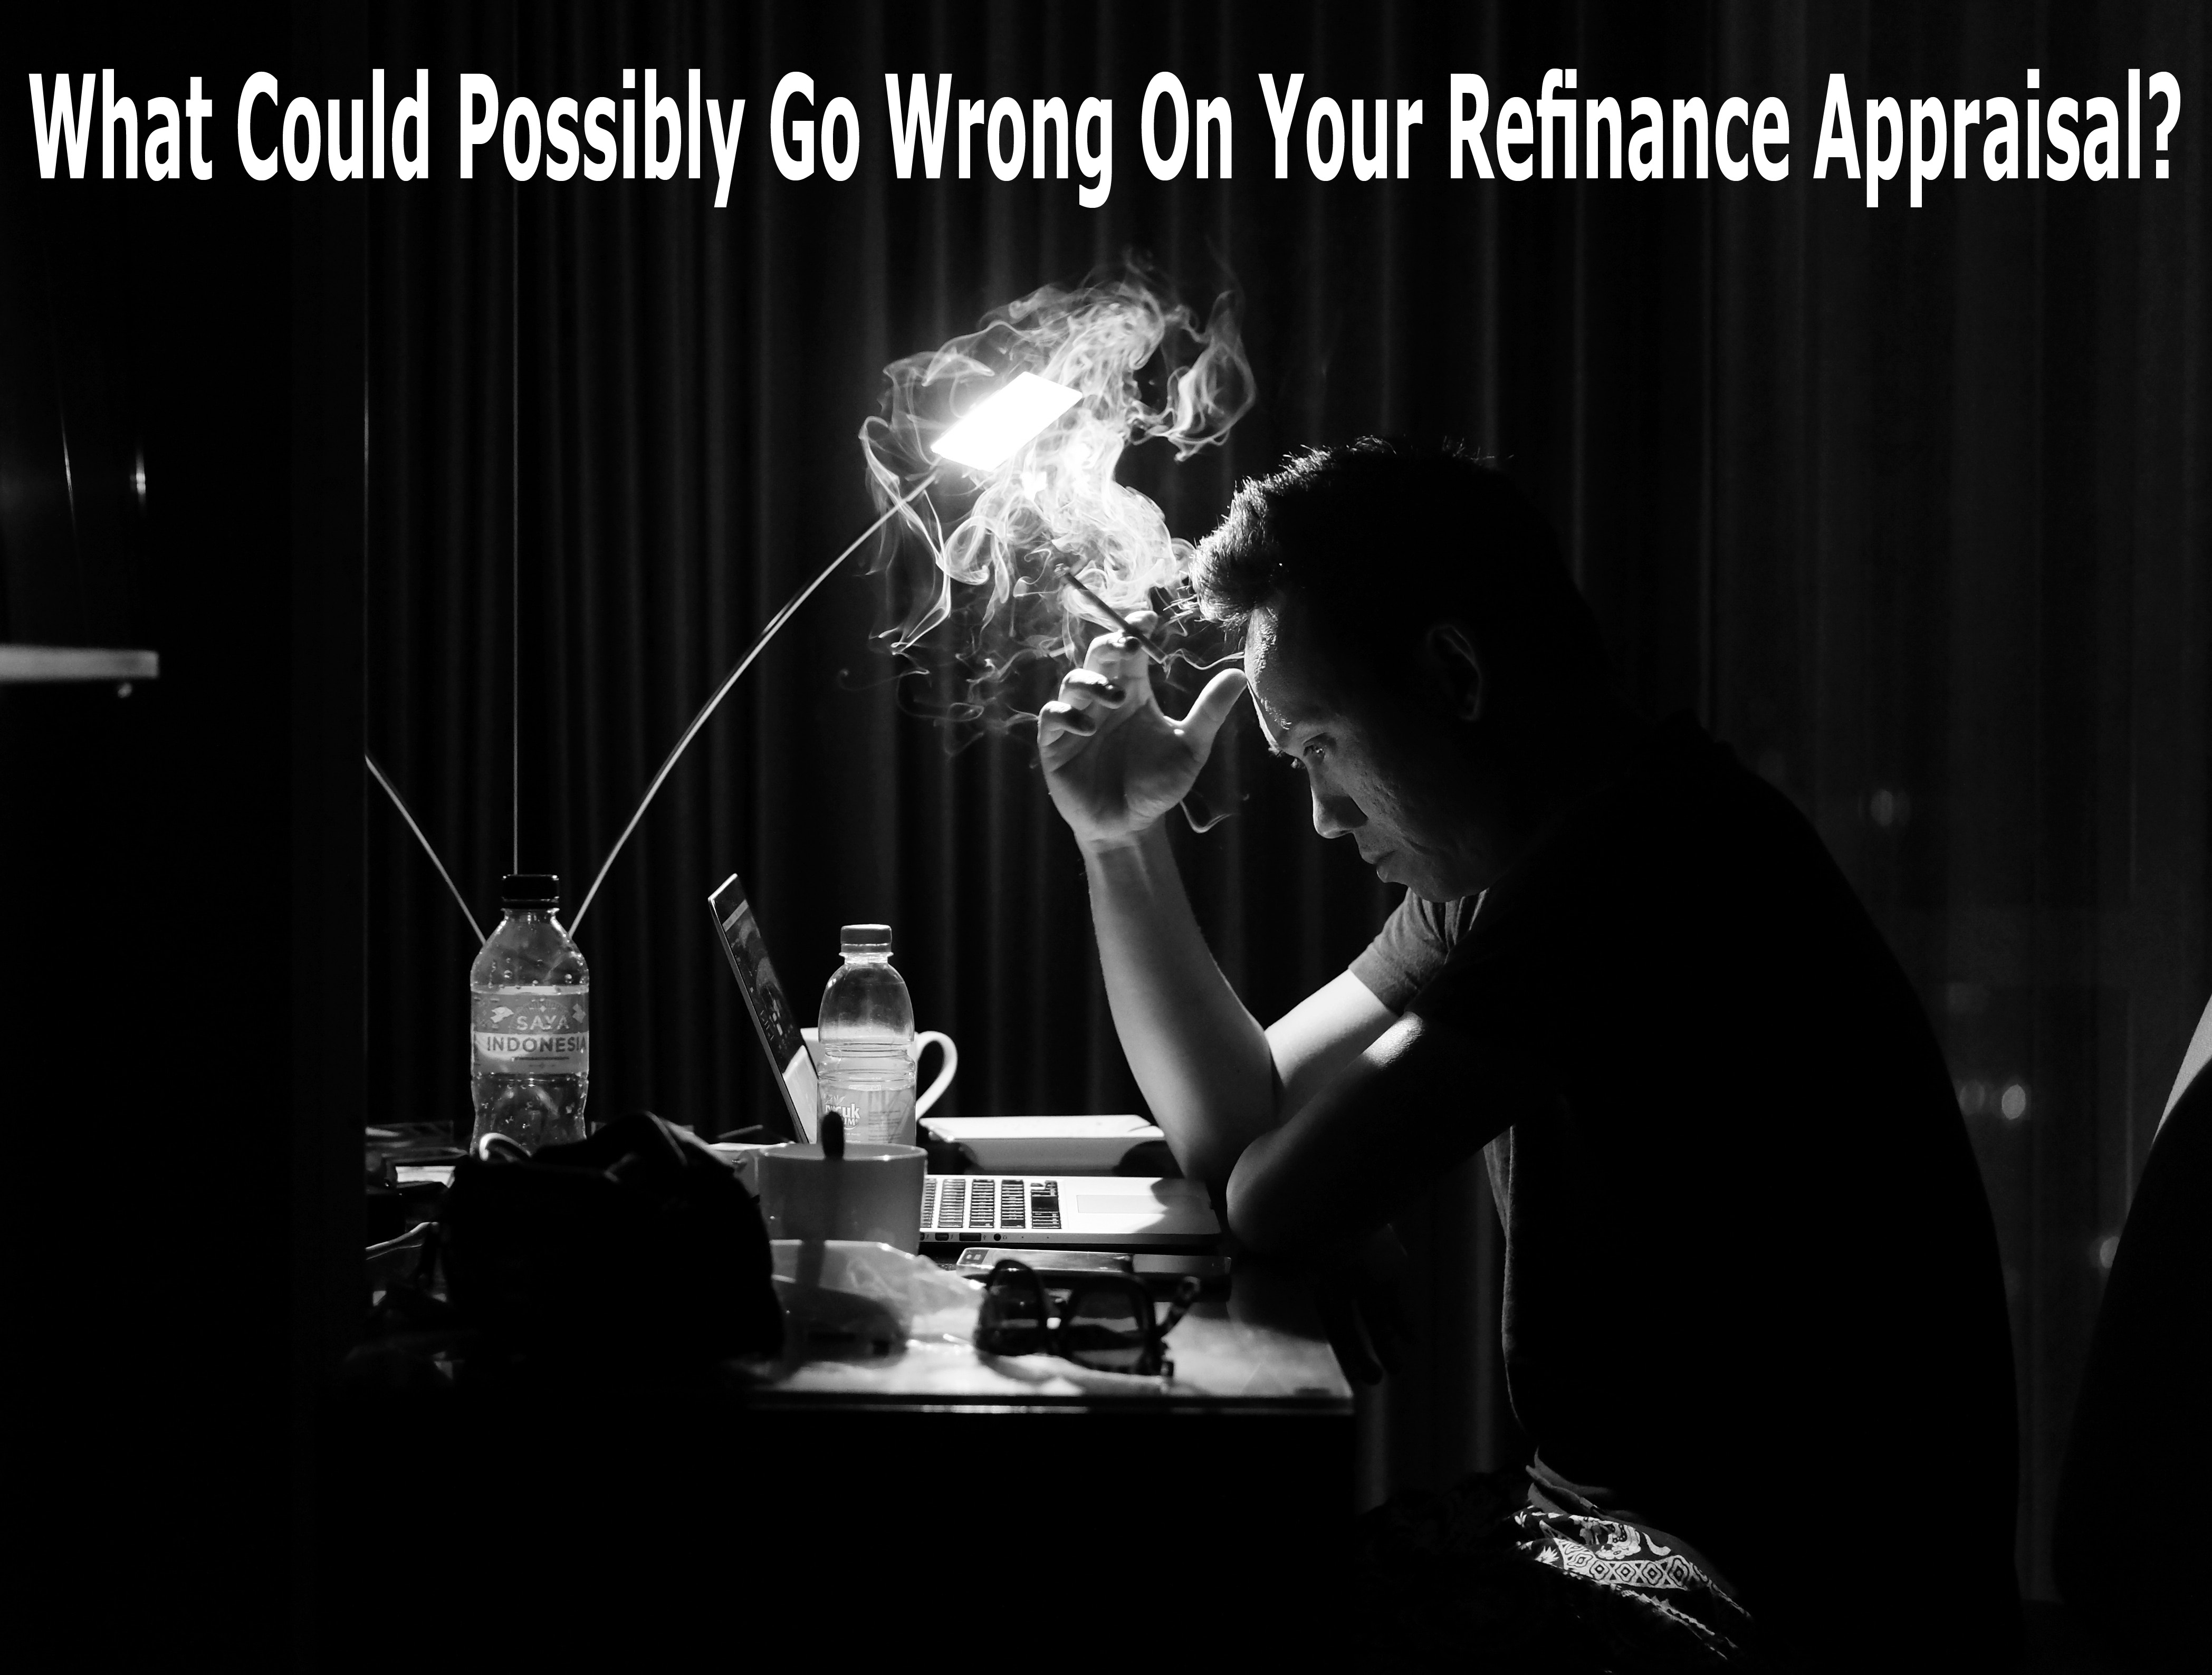 What Could Possibly Go Wrong On Your Refinance Appraisal